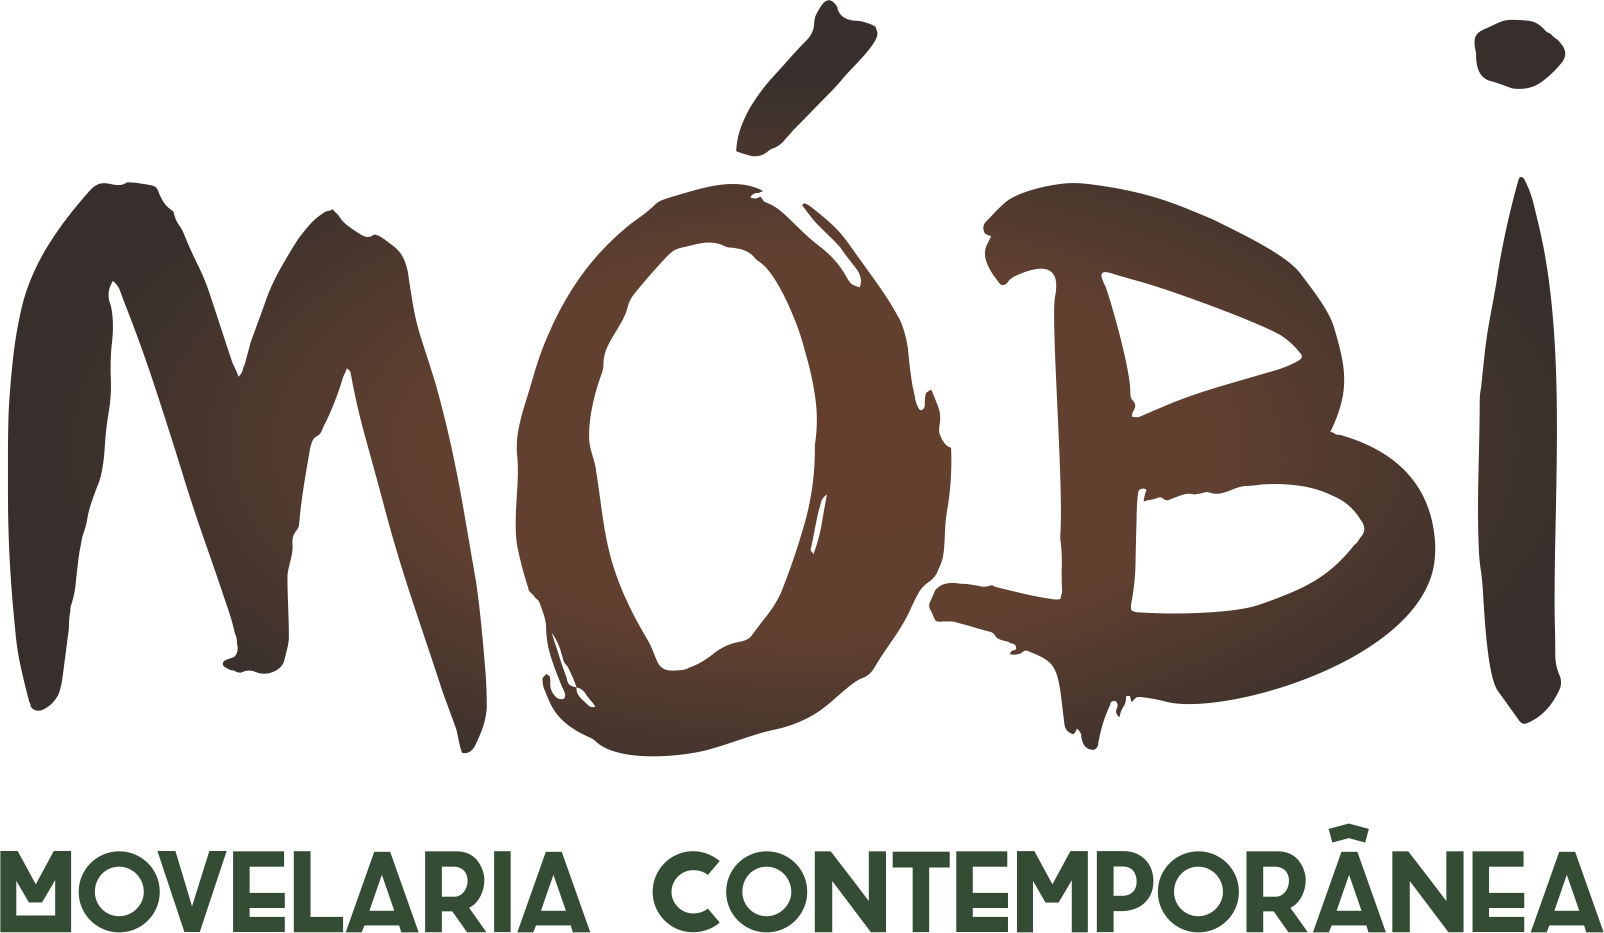 Mobi Movelaria Contemporânea